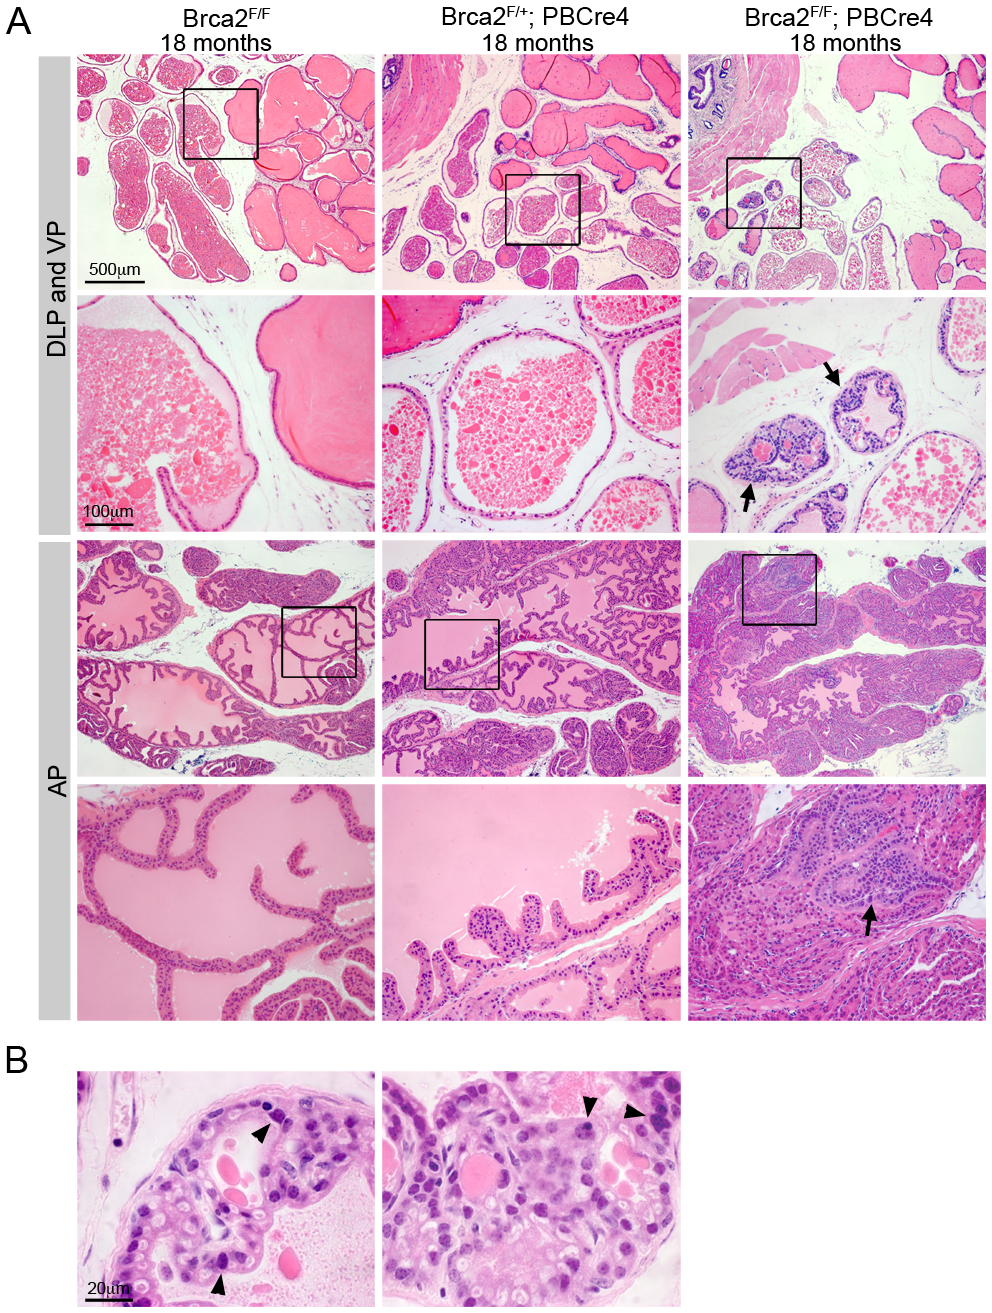 Deletion of <i>Brca2</i> from prostate epithelia results in hyperplasia and LG PIN.